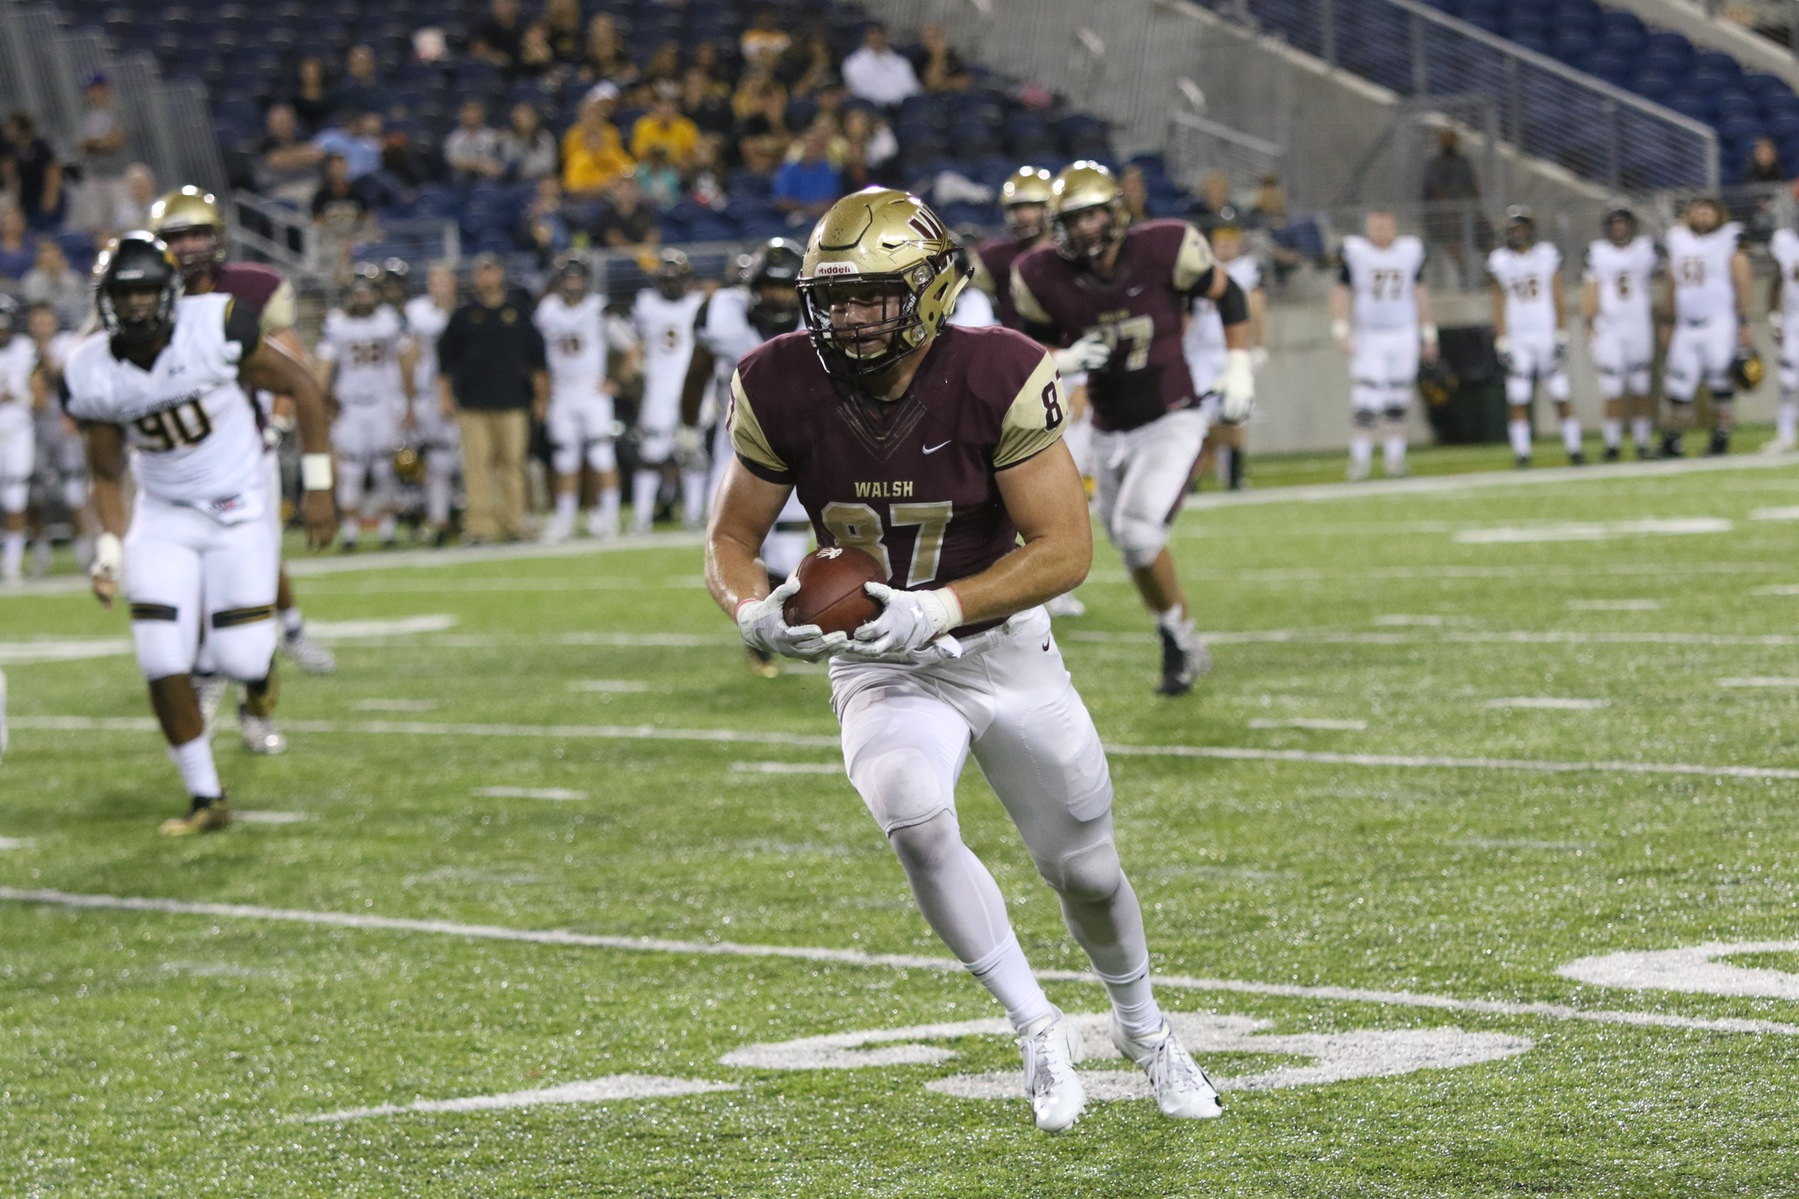 Walsh Battles ODU Tough, But Falls 20-10